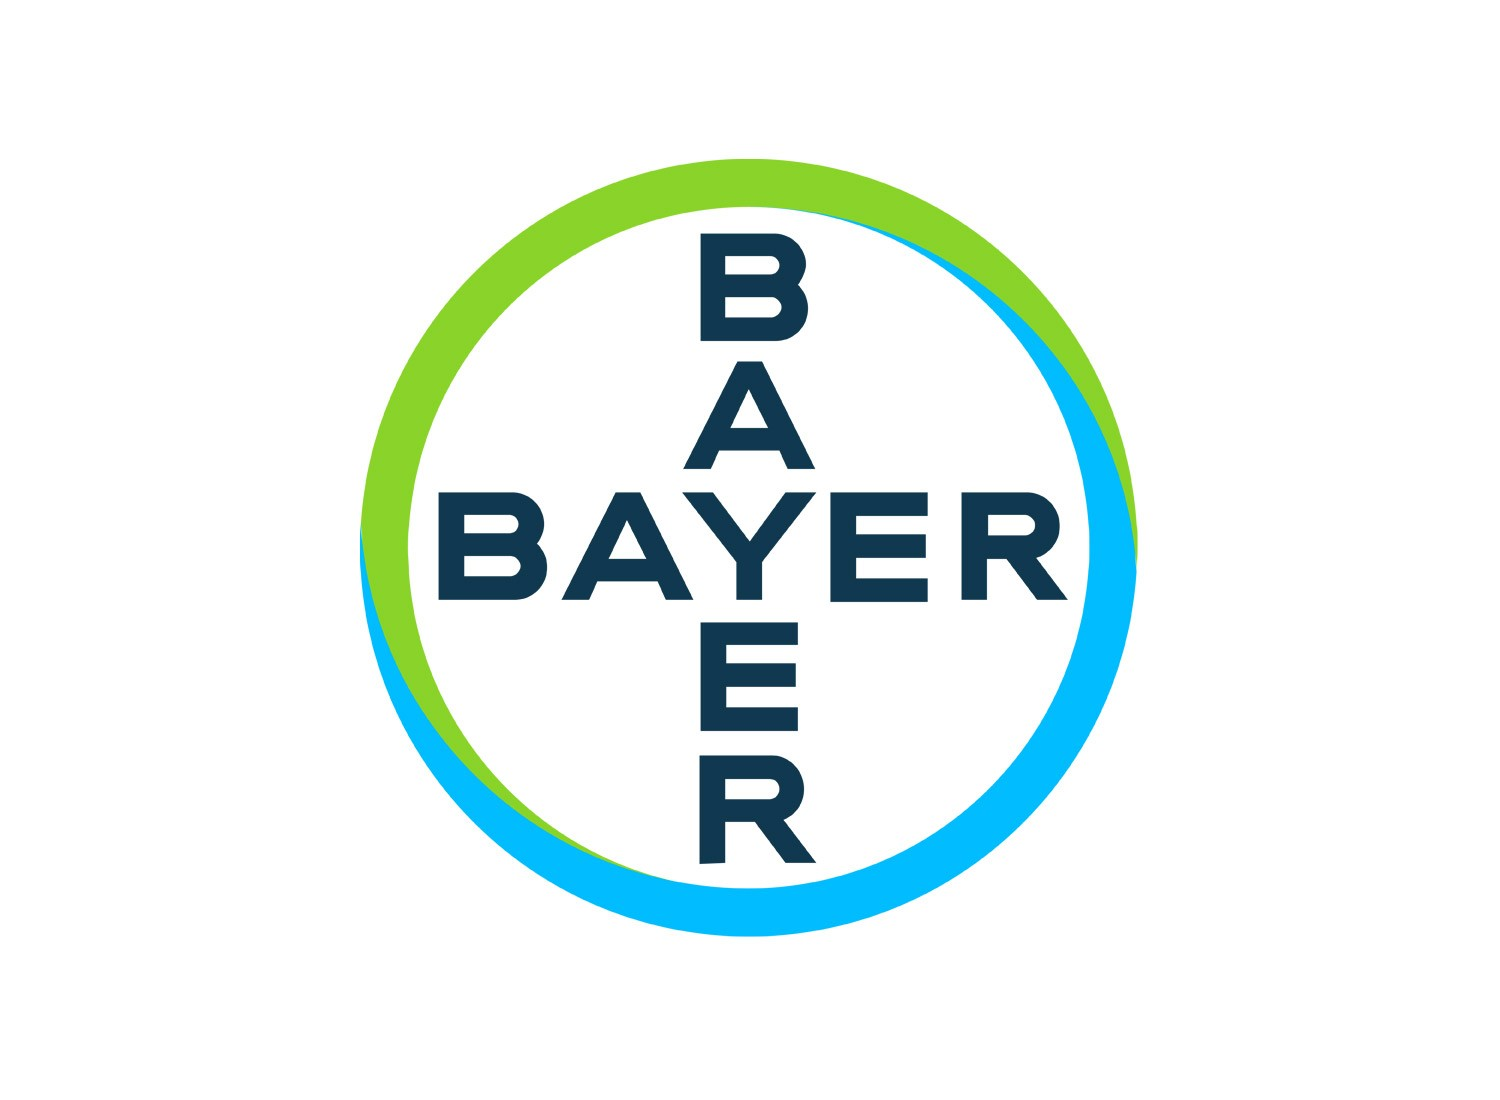 BAYER PHARMA (PVT) LTD.